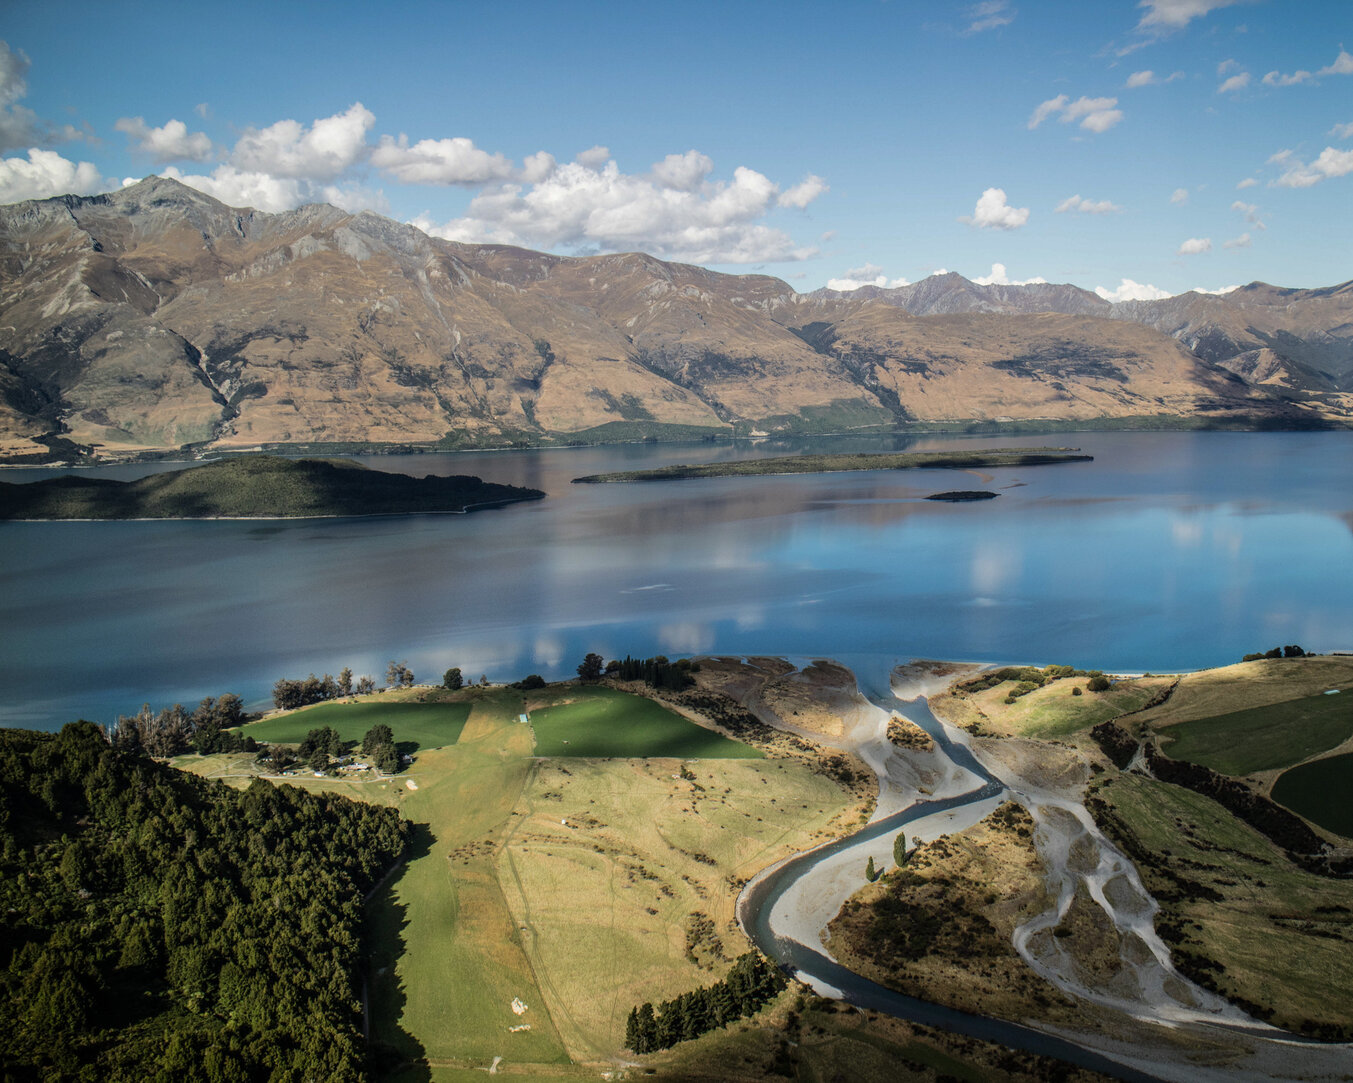 On the way back to Queenstown, after a day heli fishing in a remote backcountry river. Todd Adolph